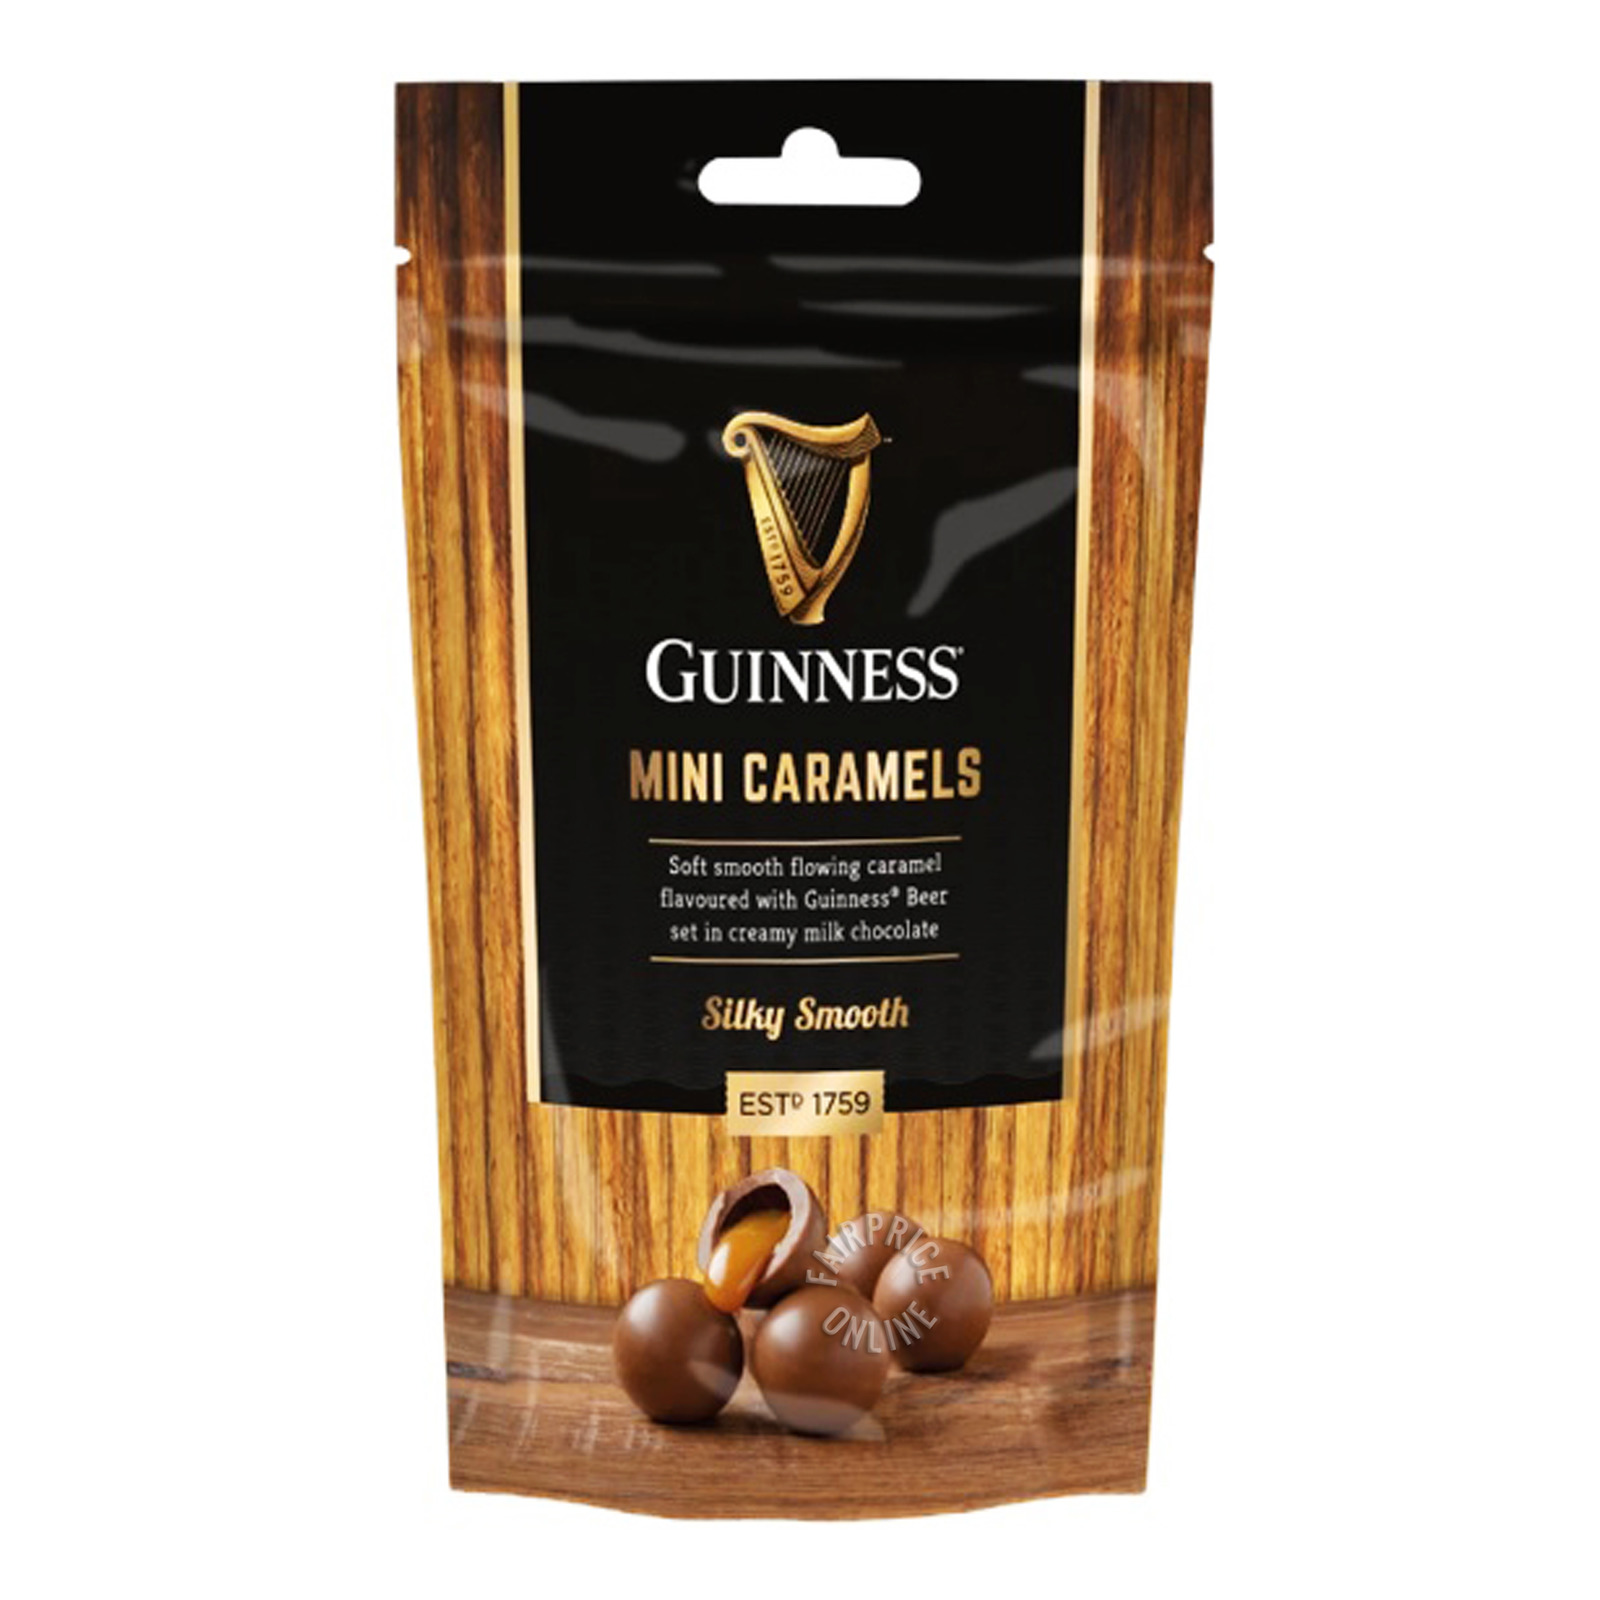 Guinness Mini Caramels Chocolate - Silky Smooth